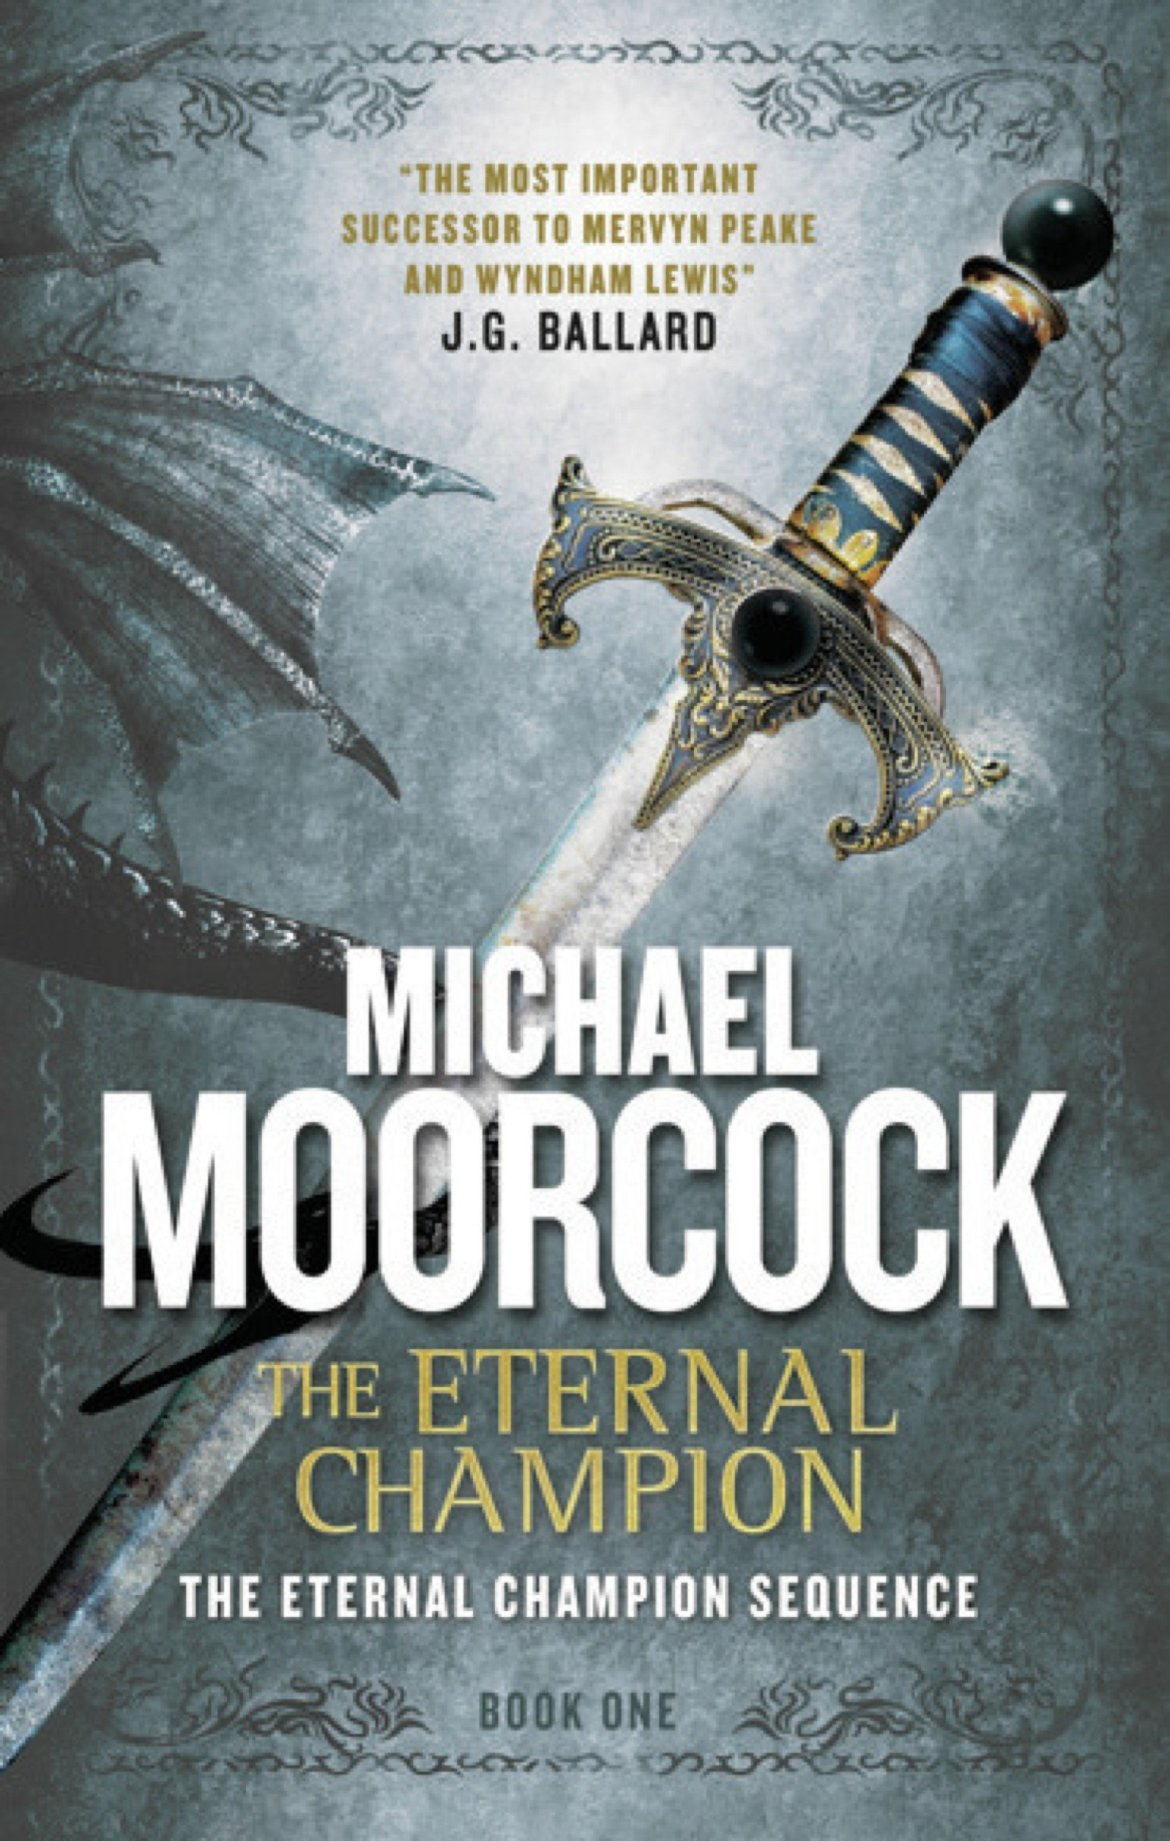 Amazon.com: The Eternal Champion: The Eternal Champion Sequence 1 (9781783291618): Moorcock, Michael: Books